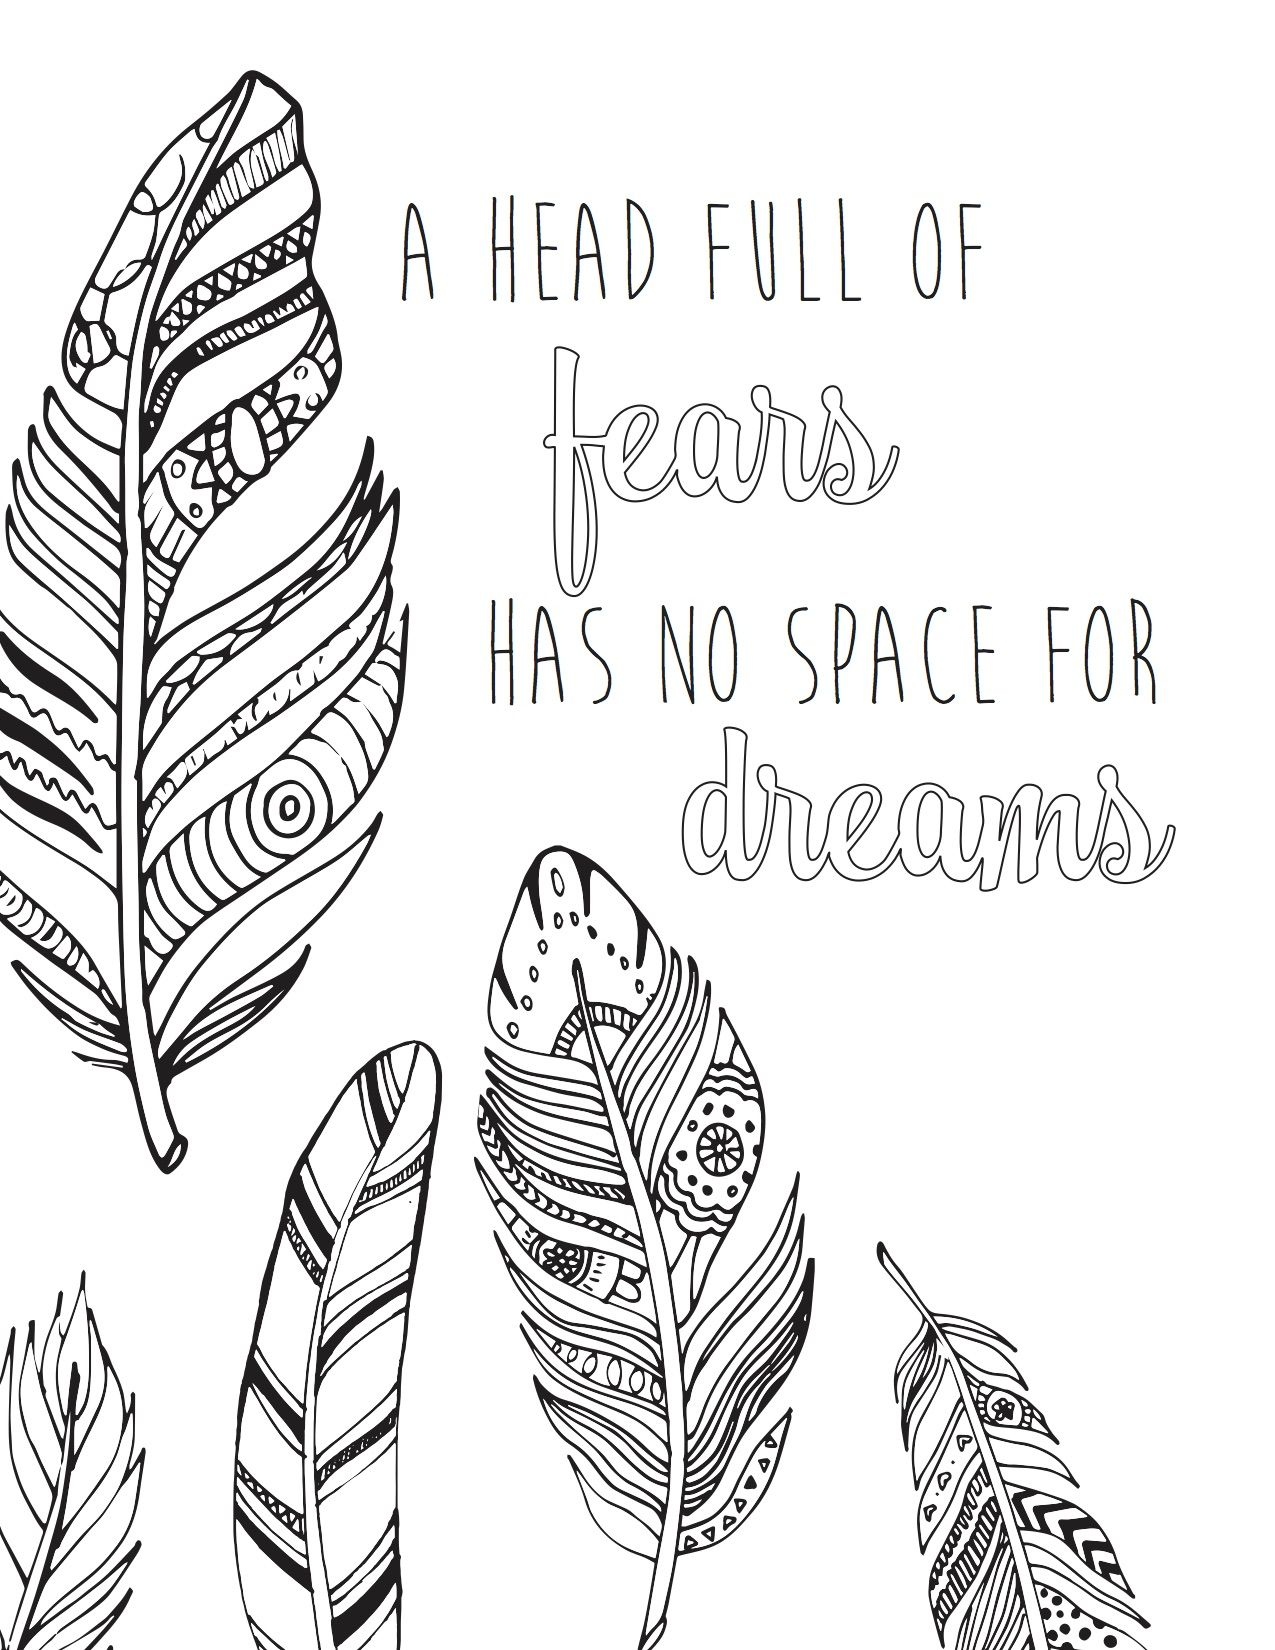 FREE Printable Coloring Page 13 from bloom daily planners